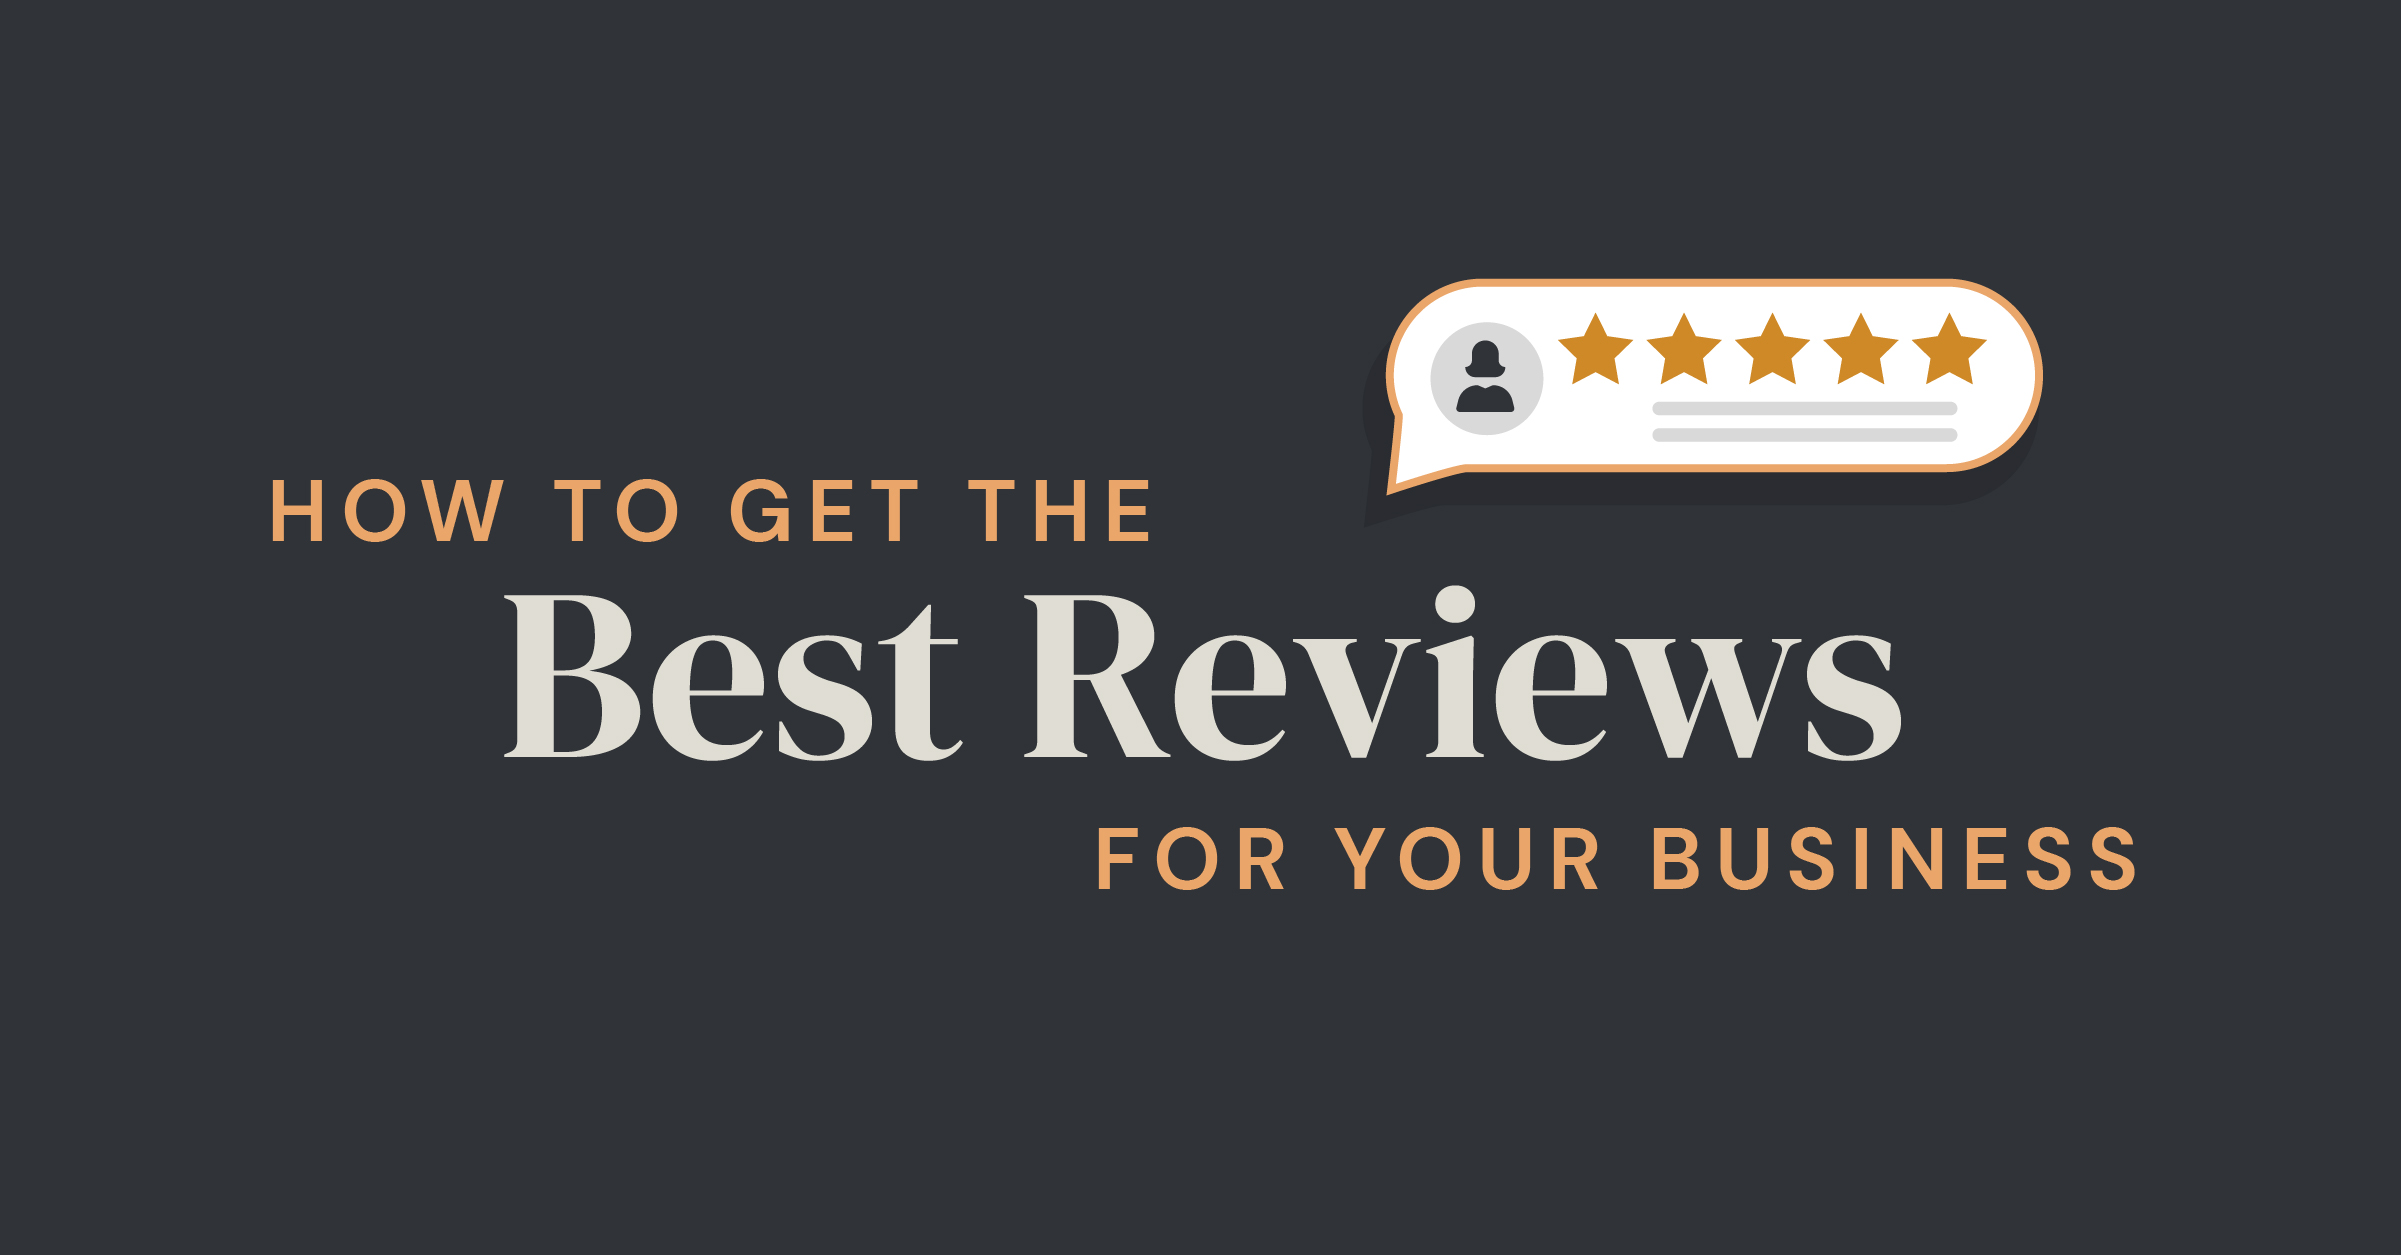 How-to-Get-the-Best-Reviews-for-Your-Business